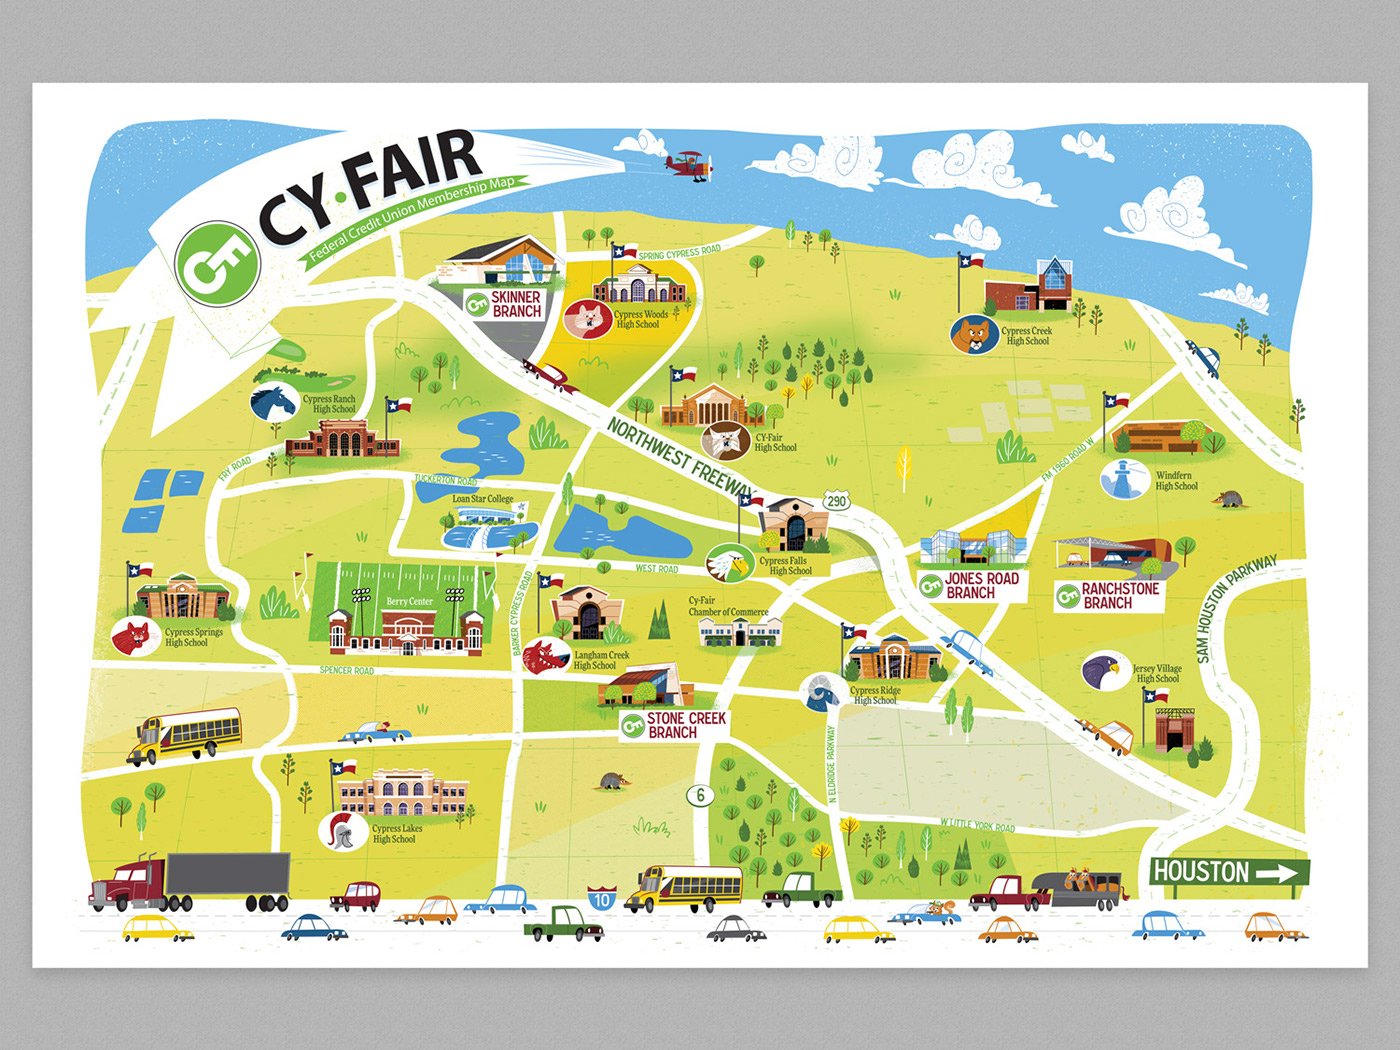 Cartoon map for Cy-Fair Federal Credit Union on Behance on not to scale map, sci fi map, road map, political map, childrens map, countries flags map, simple map, french map, office map, car and map, cute map, tube map, game map, classroom map, me on the map, watercolor map, student with map, vintage map,